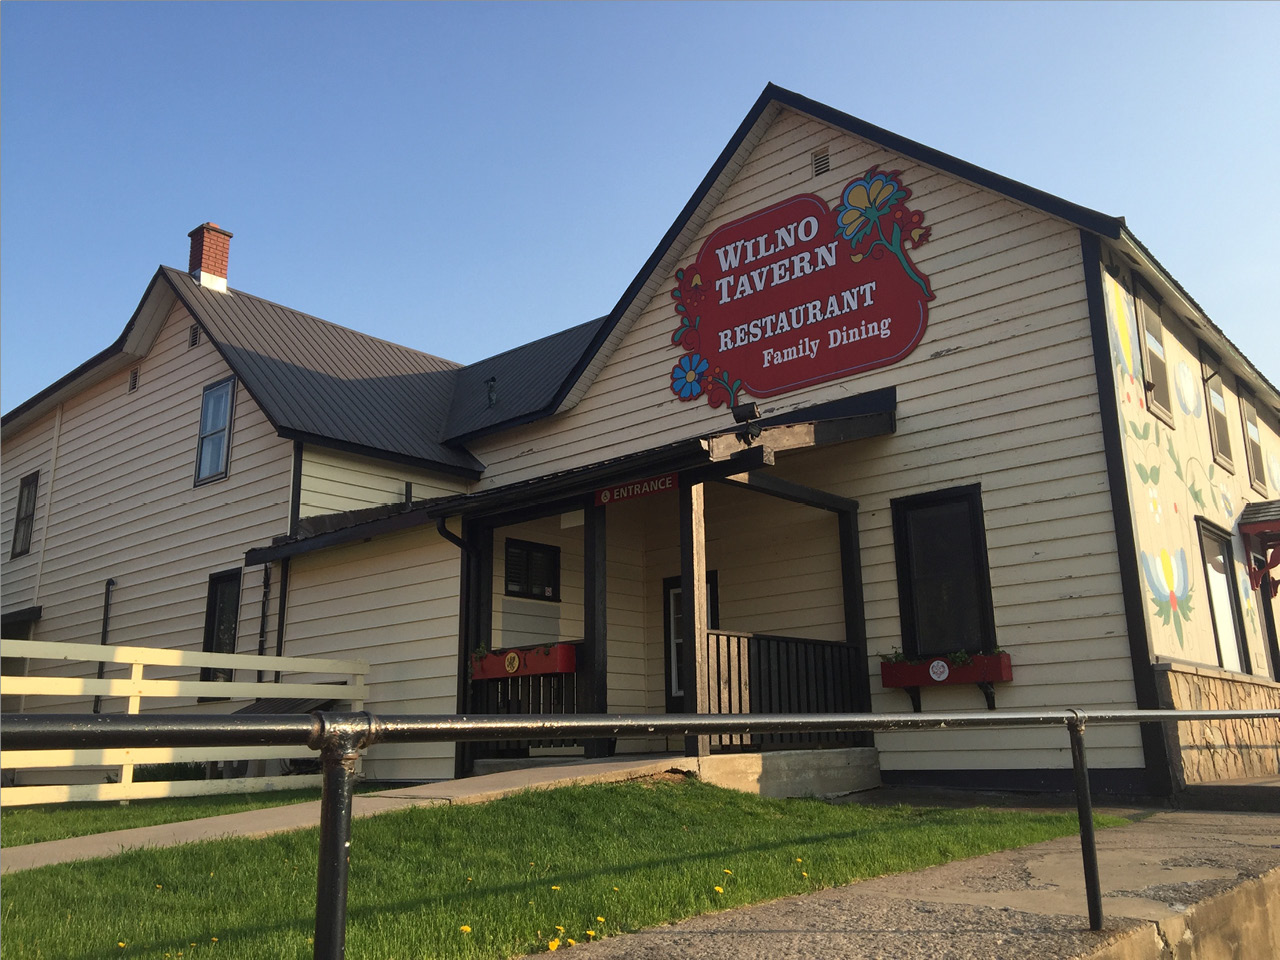 The WIlno Tavern is a well-known local gathering spot.